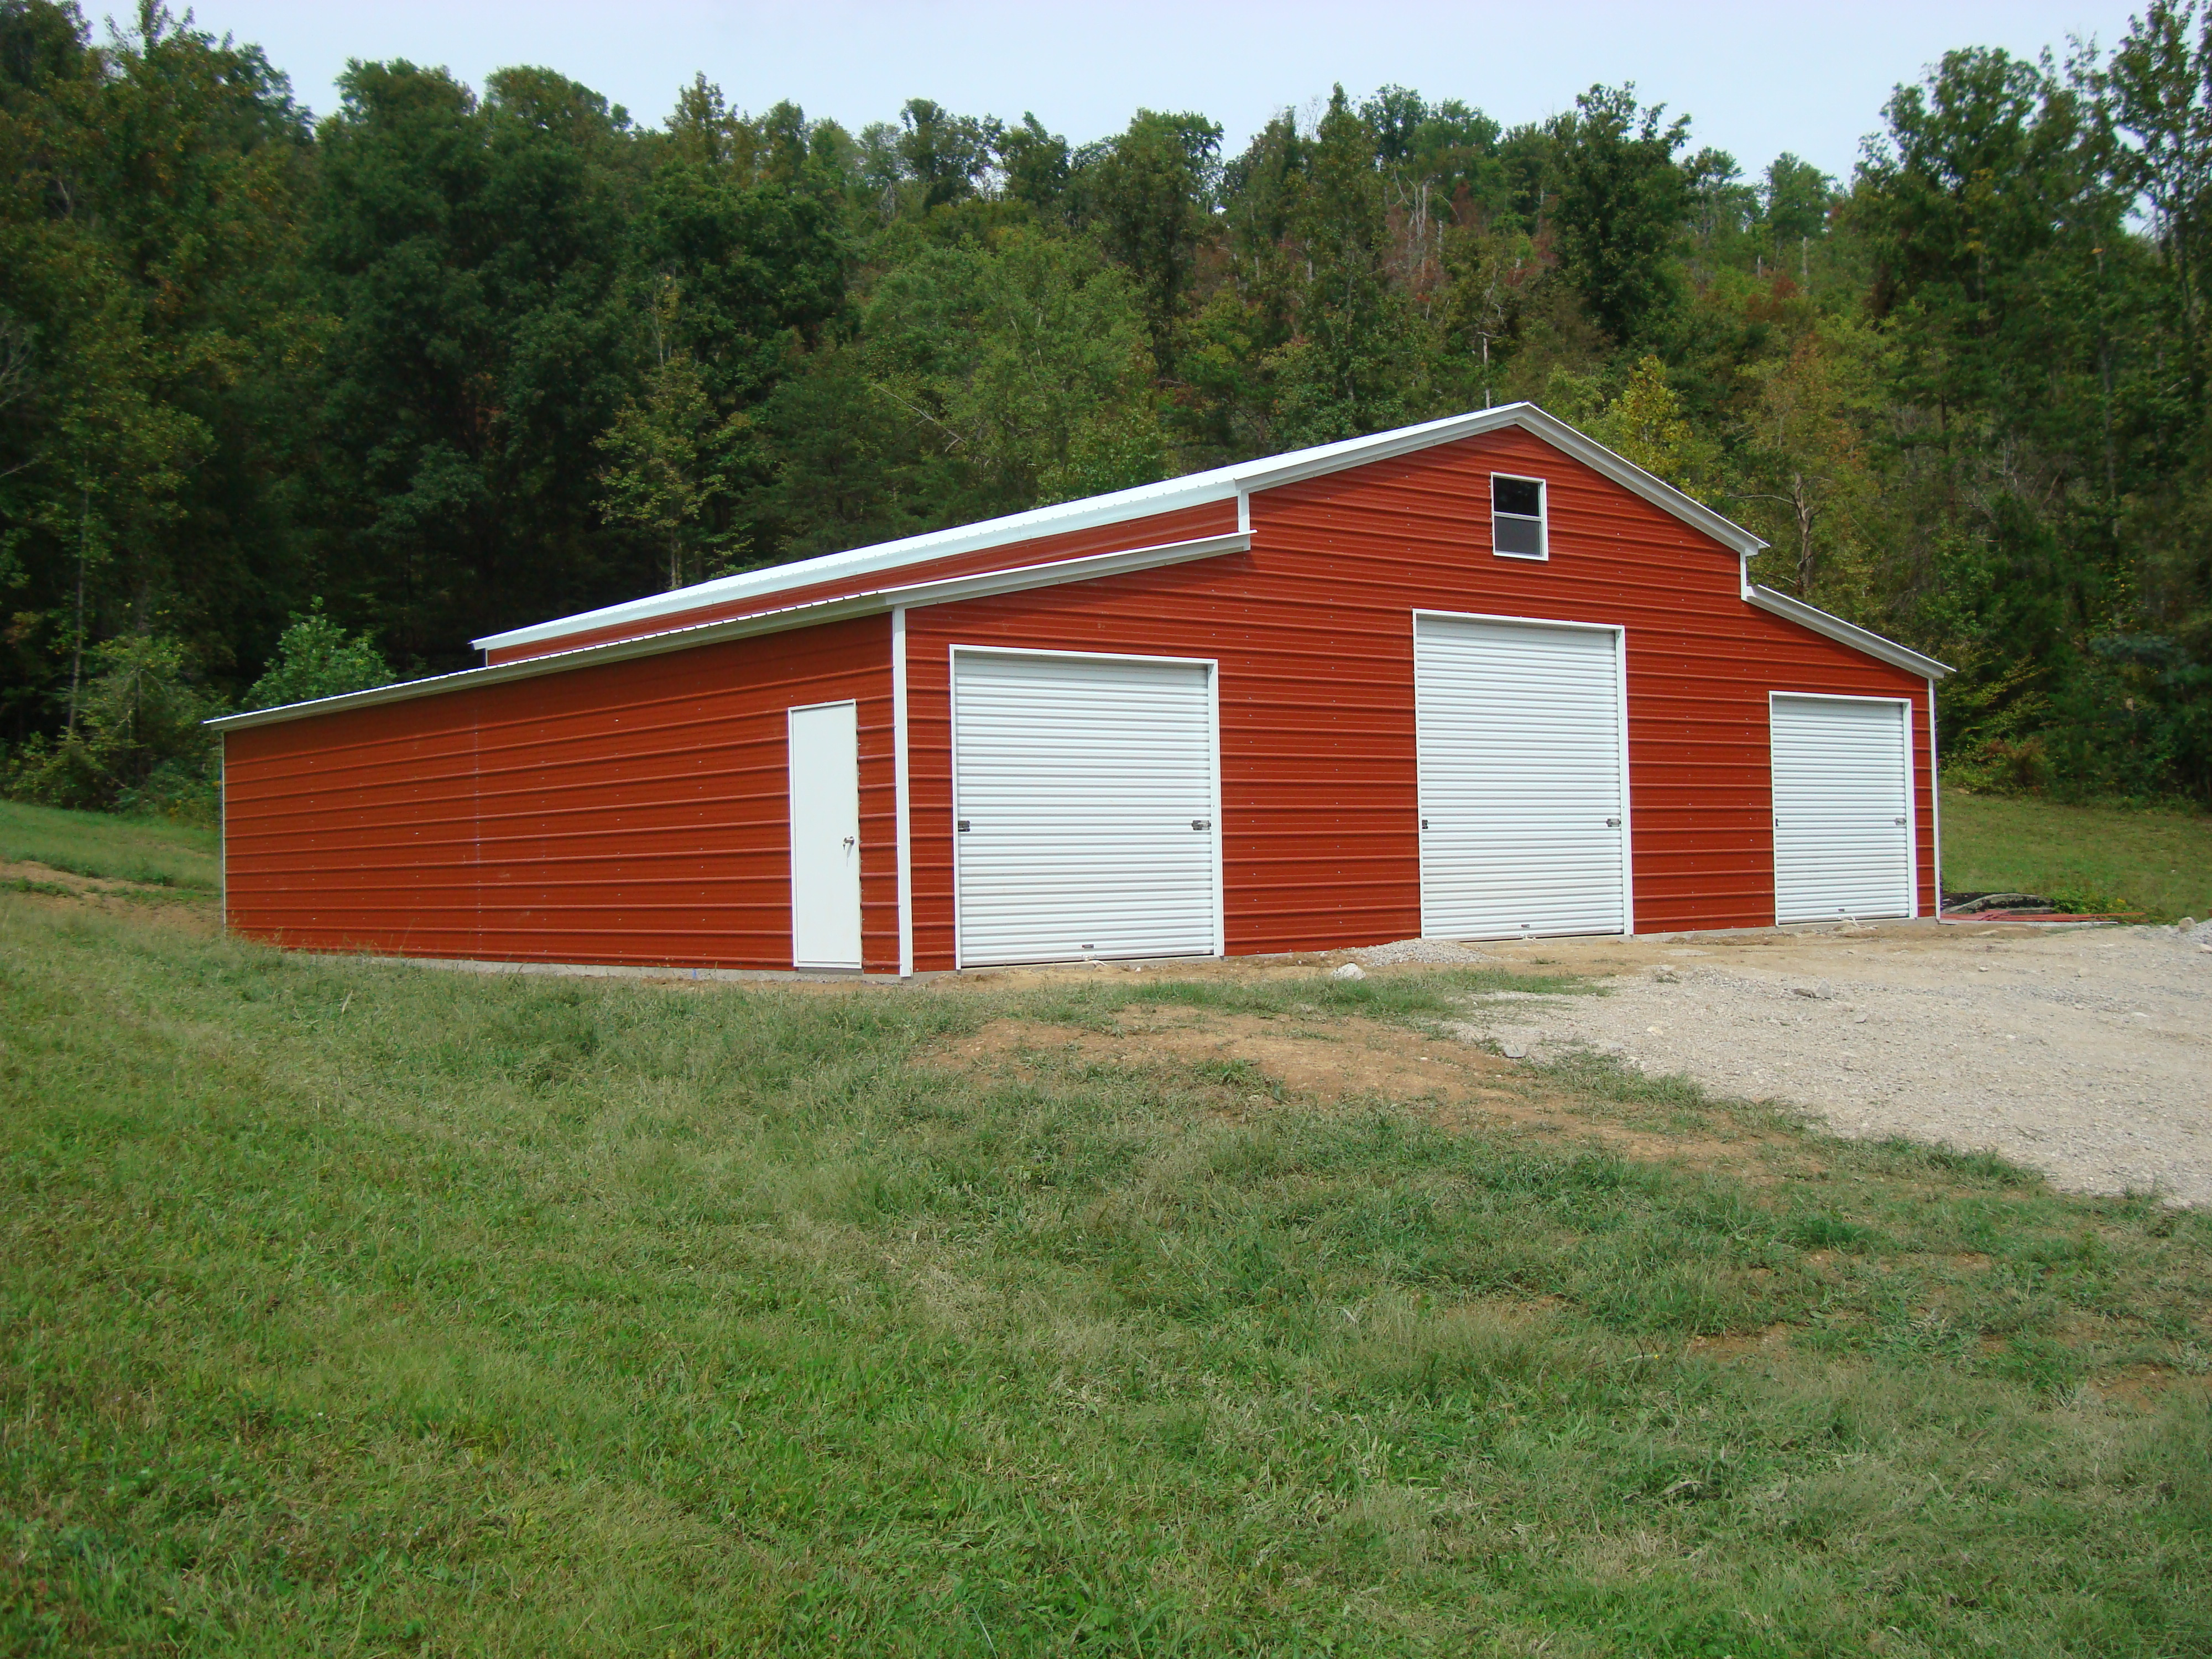 new barns custom amish stucco shingle we md built slider buildings reisterstown roof bank p doors precise design barn build cat and category view garage